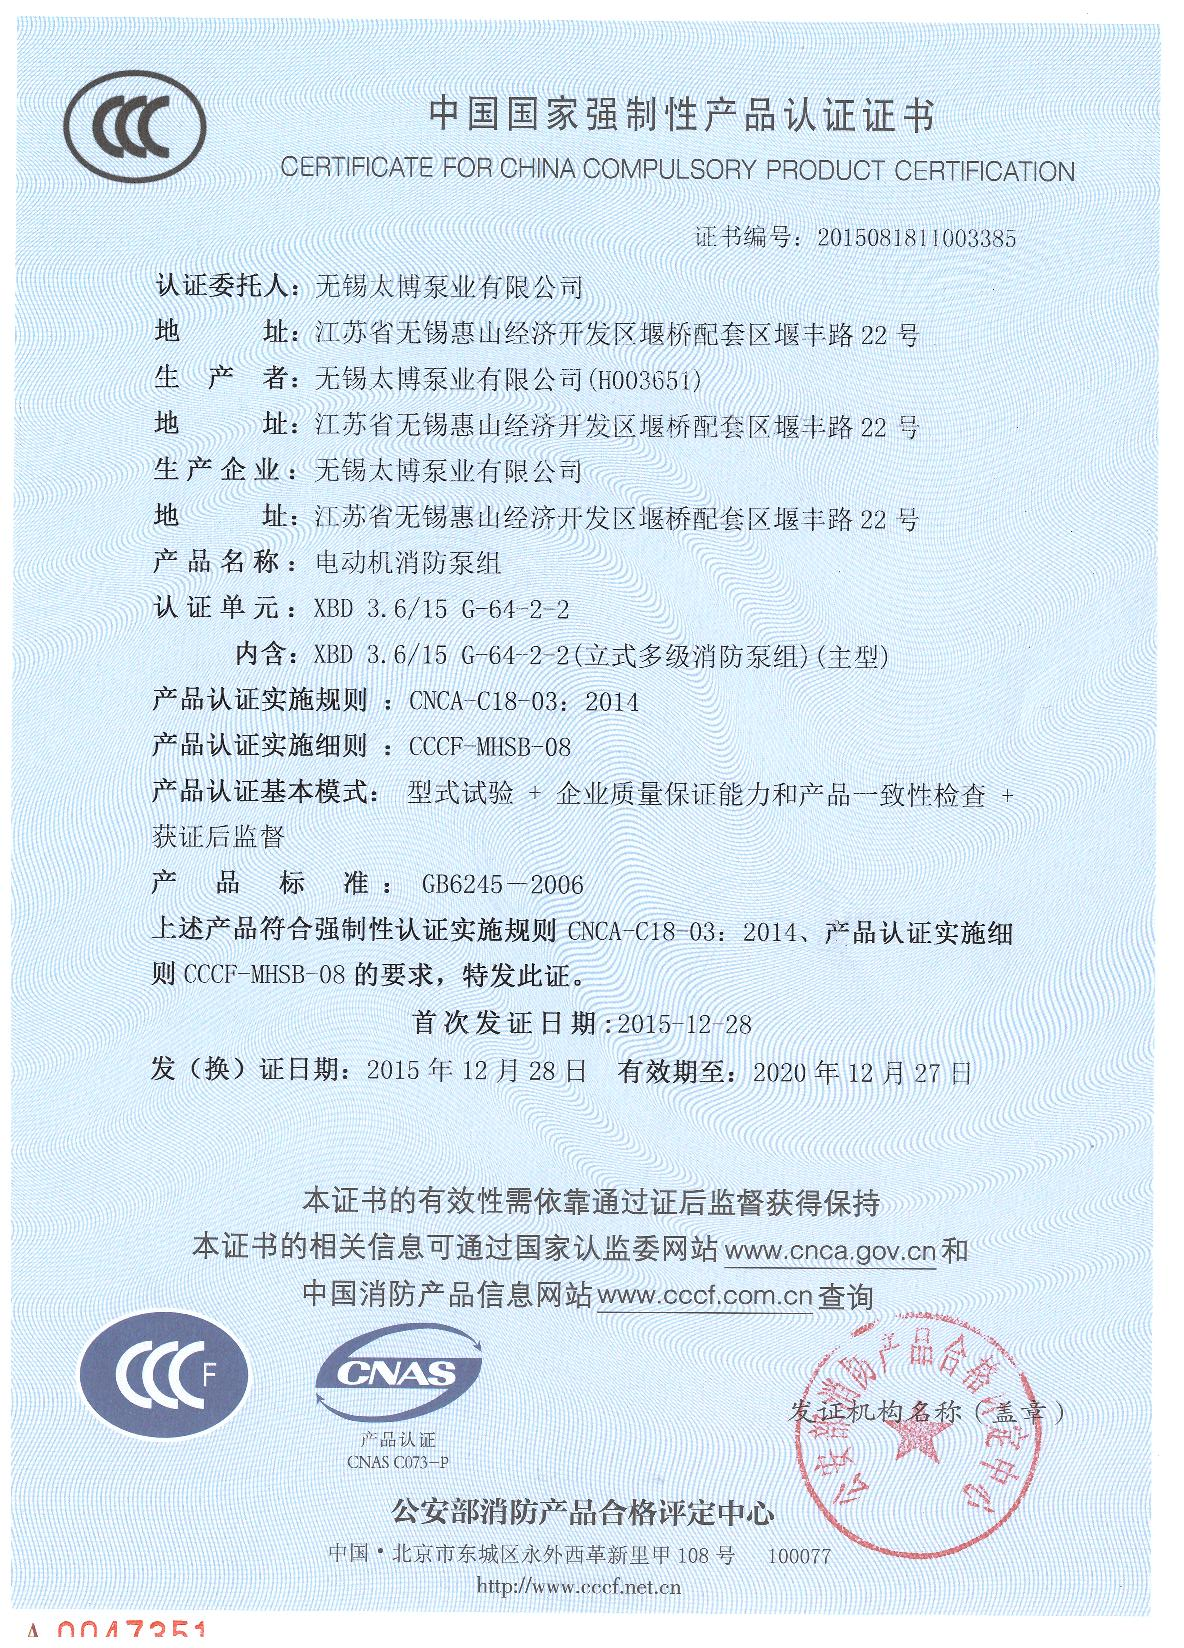 certificate for china compulsory product centrification